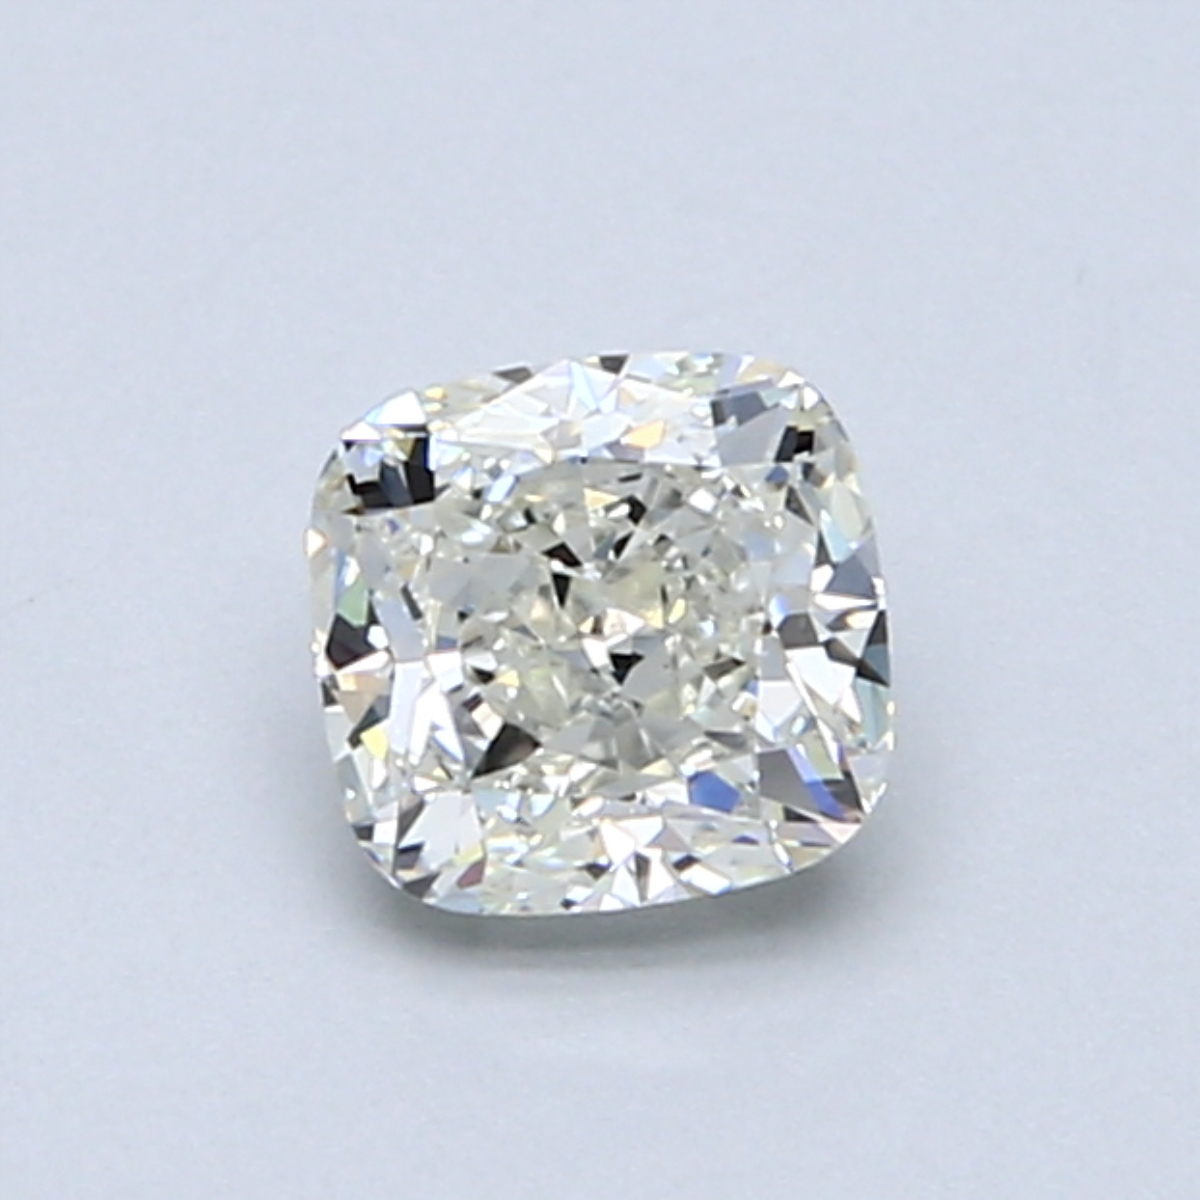 0.71 Carat K SI1 Good Diamond